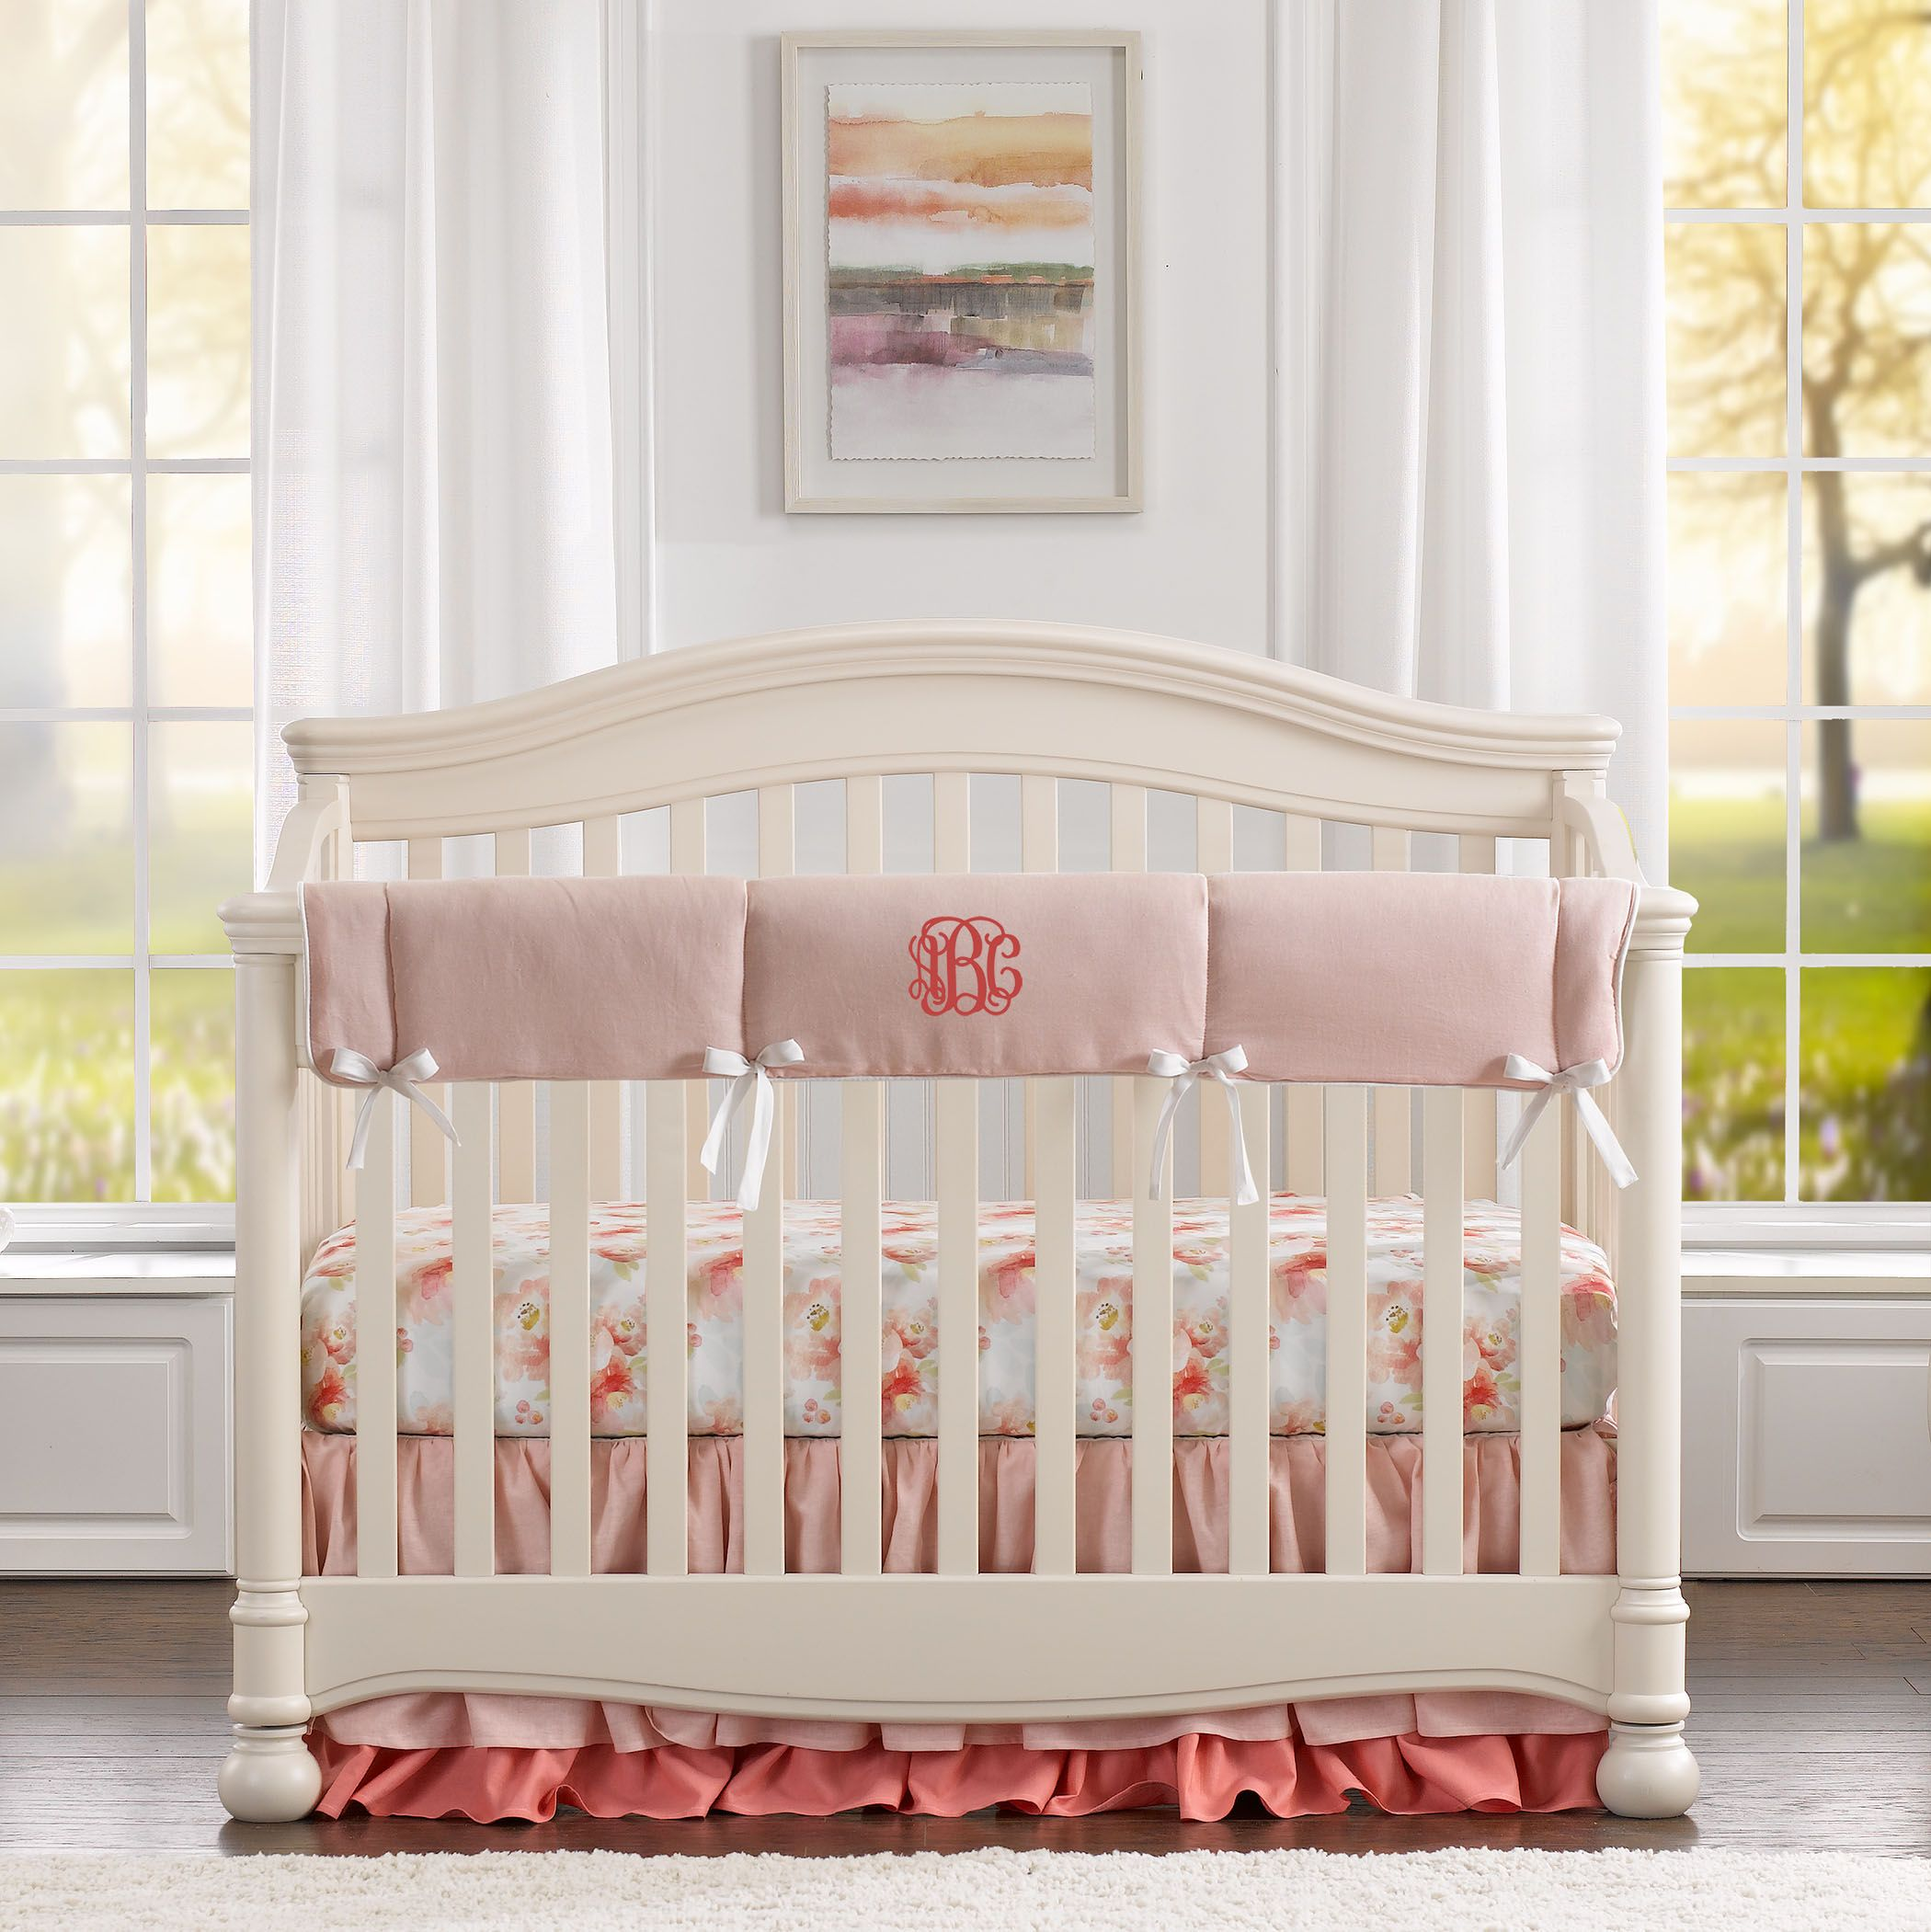 Floral Nursery Bedding Best Pink Watercolor Floral Bumperless Crib Bedding  Pink Watercolor Design Ideas